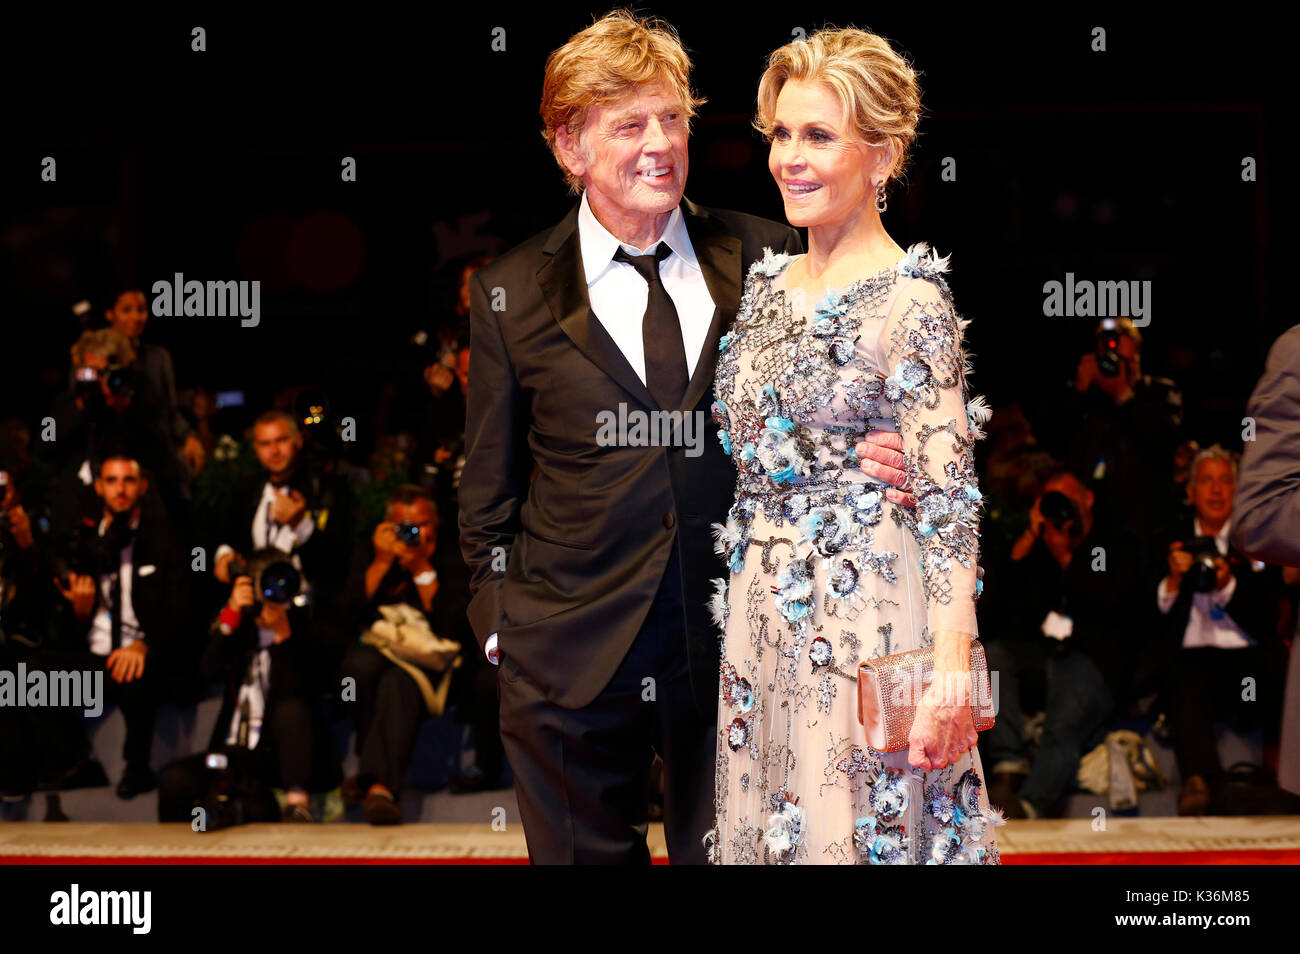 "Robert Redford und Jane Fonda die Teilnahme an der ""unsere Seelen in der Nacht 'Premiere auf dem 74. Internationalen Filmfestival von Venedig im Palazzo del Cinema am 01 September, 2017 in Venedig, Italien Stockbild"